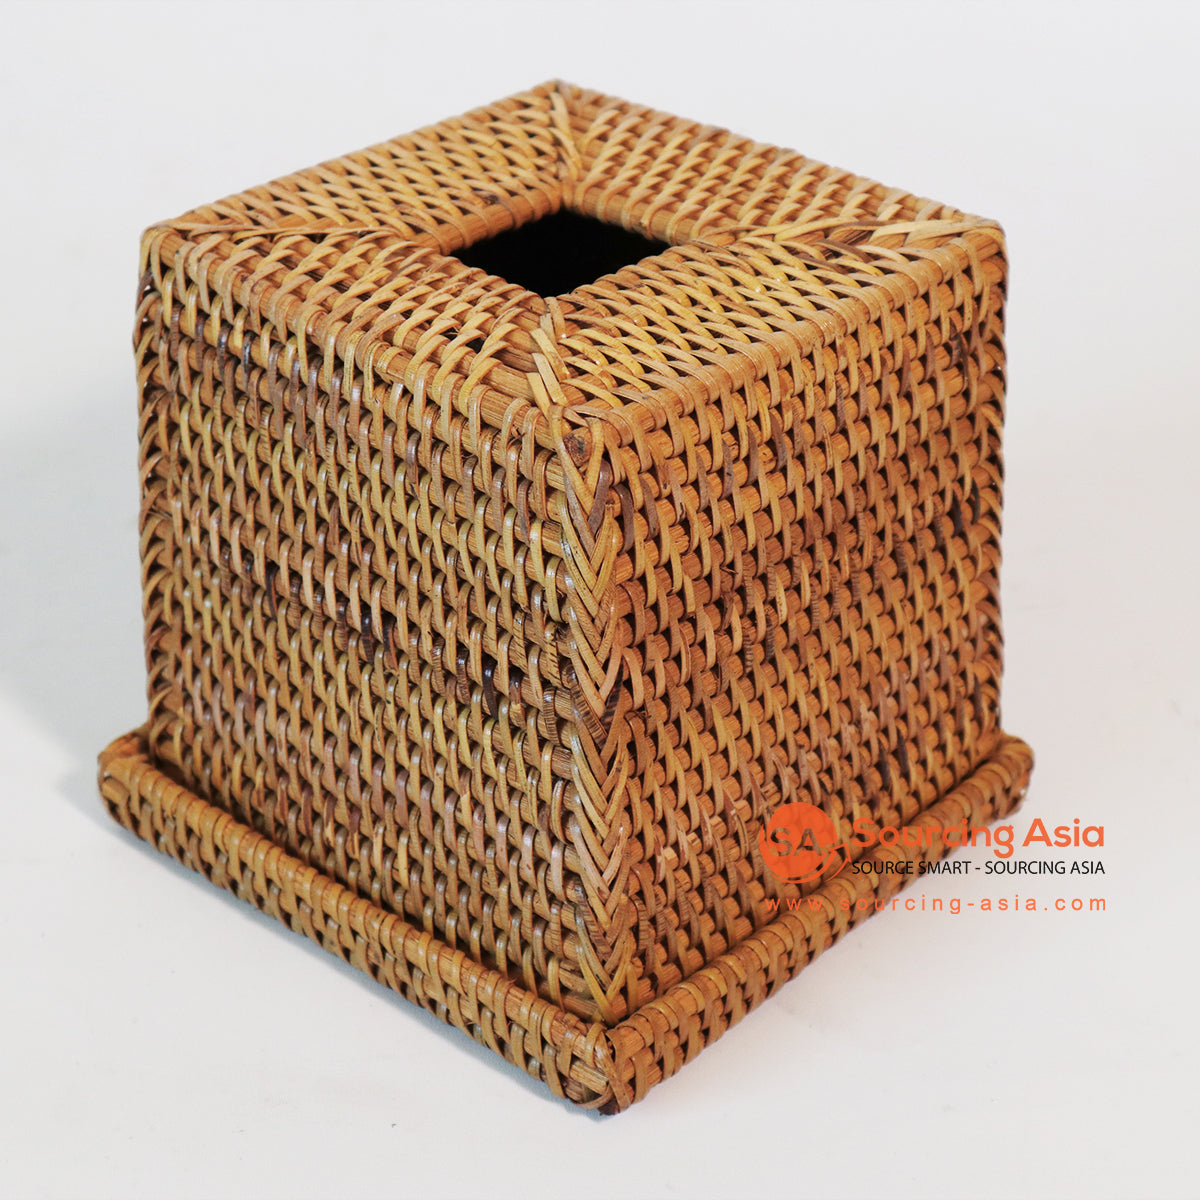 MTIC072 RATTAN TISSUE BOX COLOR NATURAL